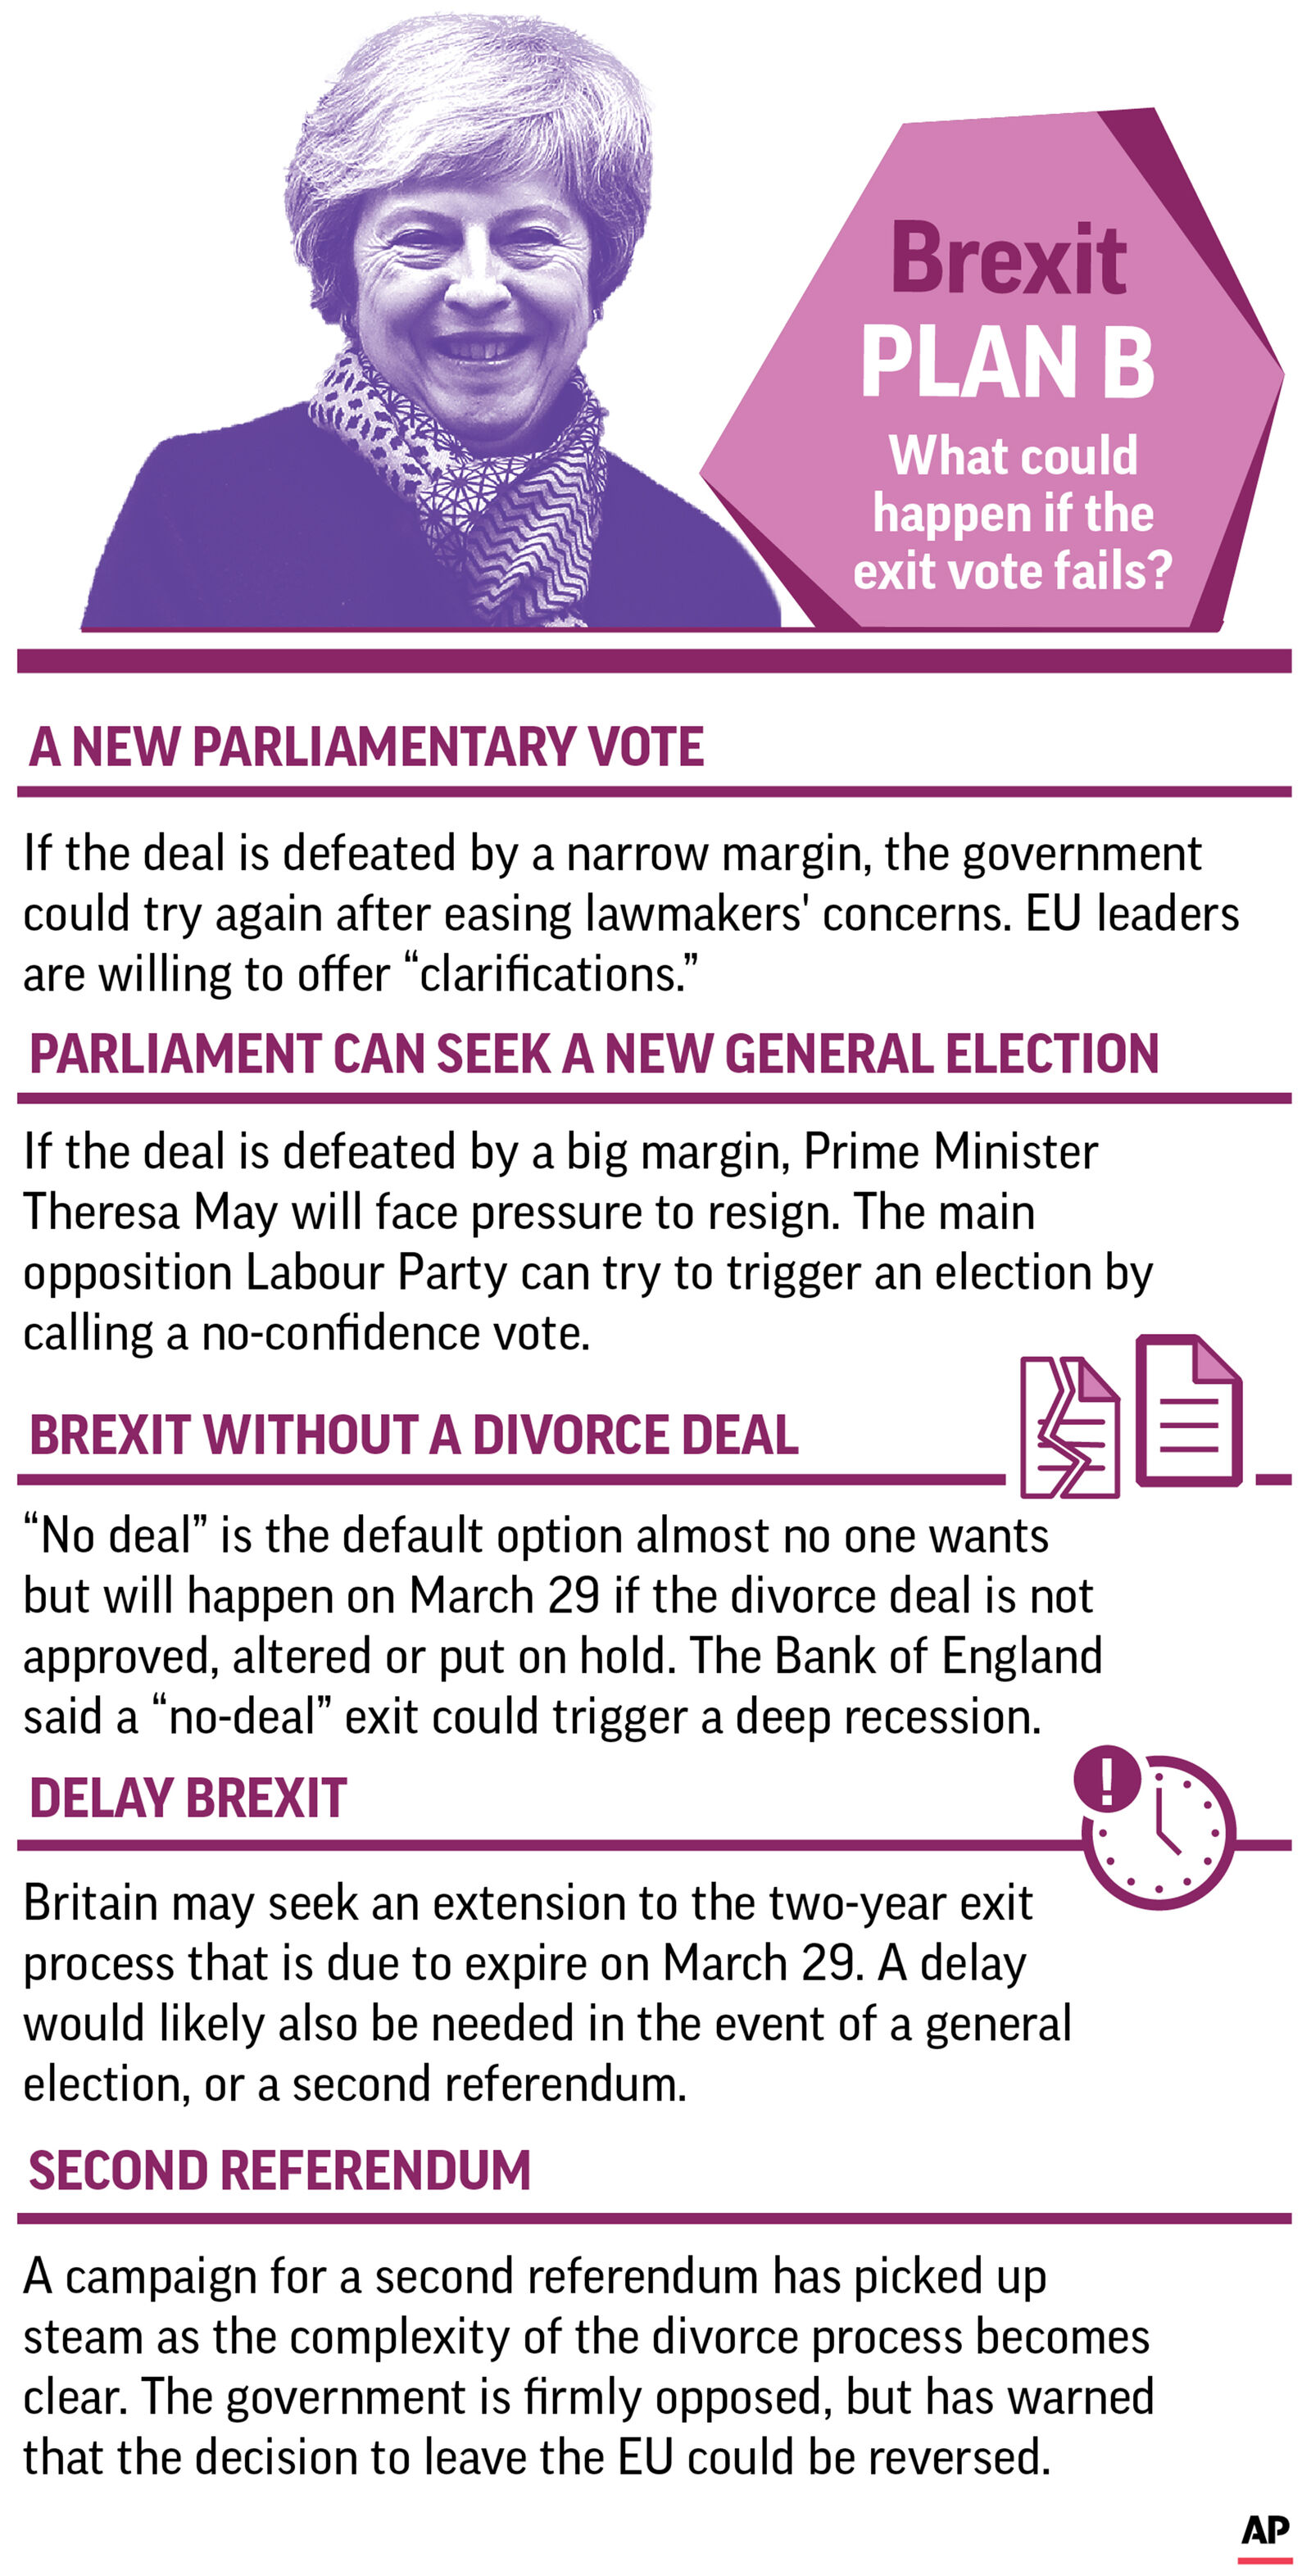 Graphic explains the various options ahead of negotiating a plan B for a Brexit; 2c x 6 1/2 inches; 96.3 mm x 165 mm;